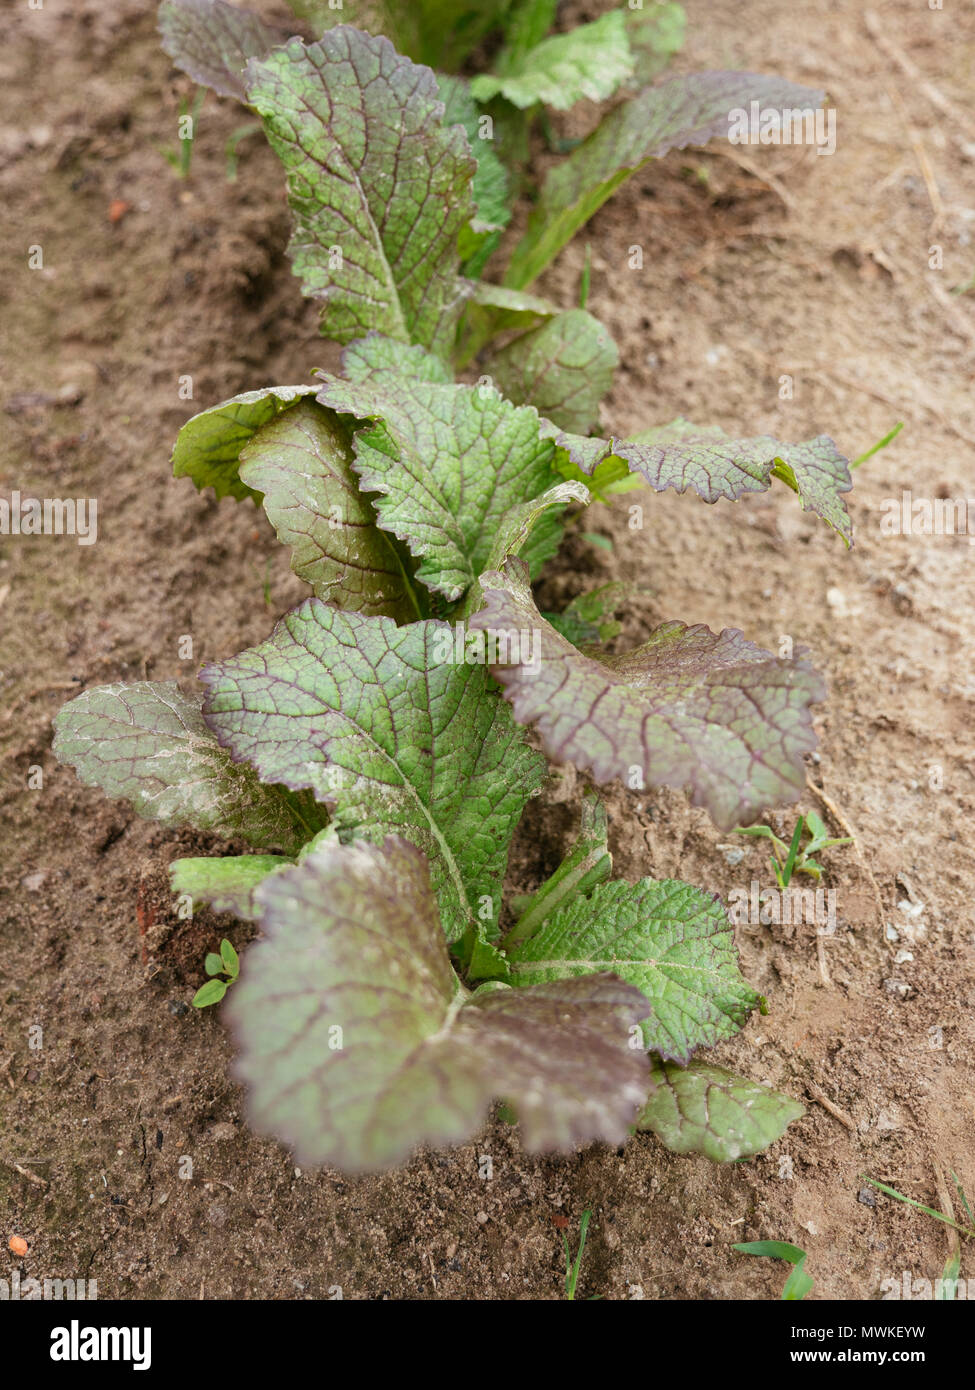 Chinese Red Giant leaf mustard (Brassica juncea) in a vegetable garden Stock Photo